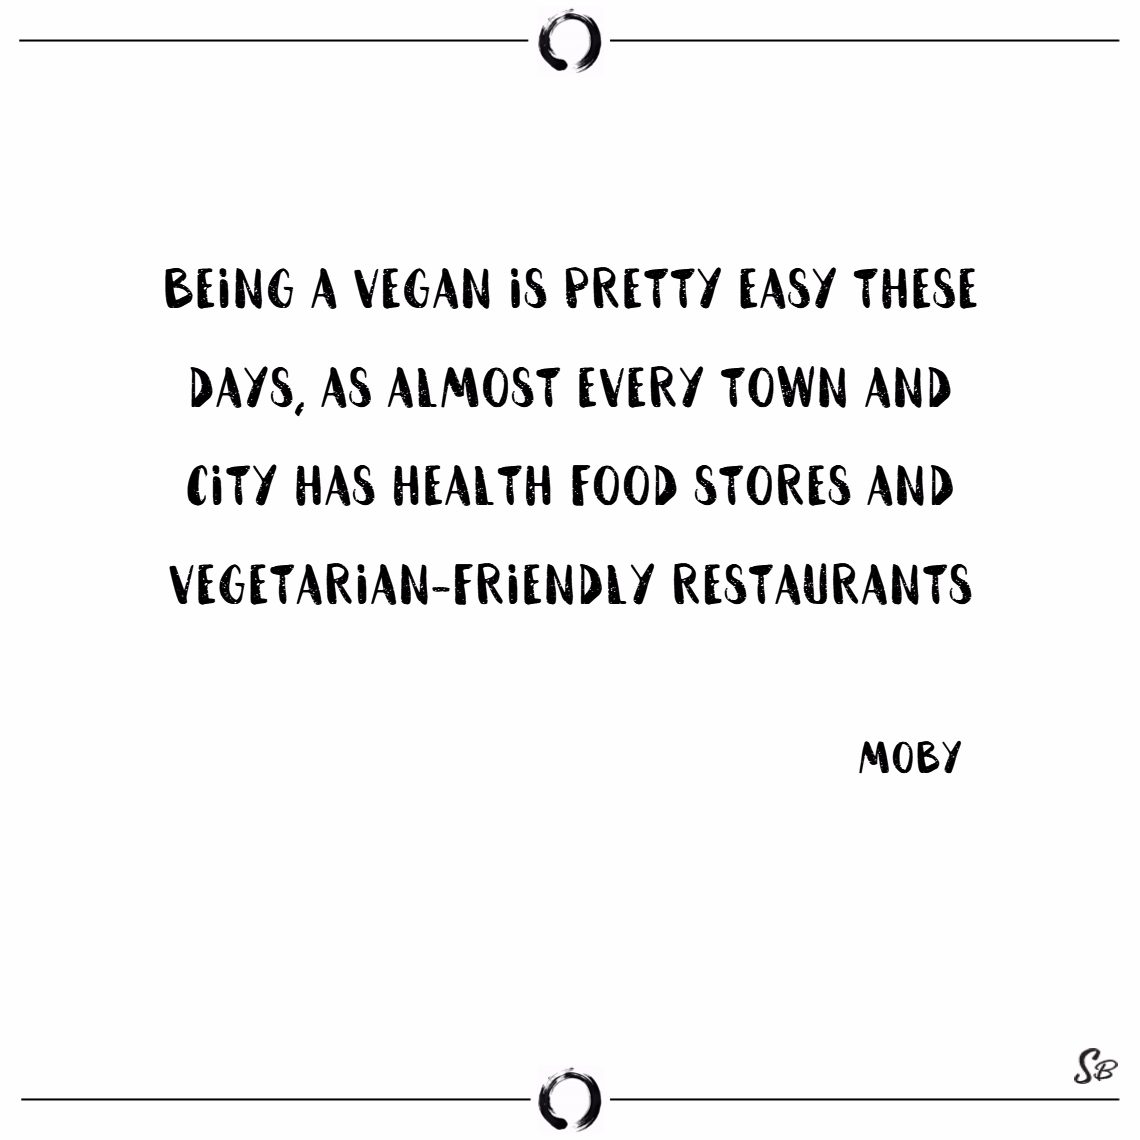 Being a vegan is pretty easy these days, as almost every town and city has health food stores and vegetarian friendly restaurants. – moby